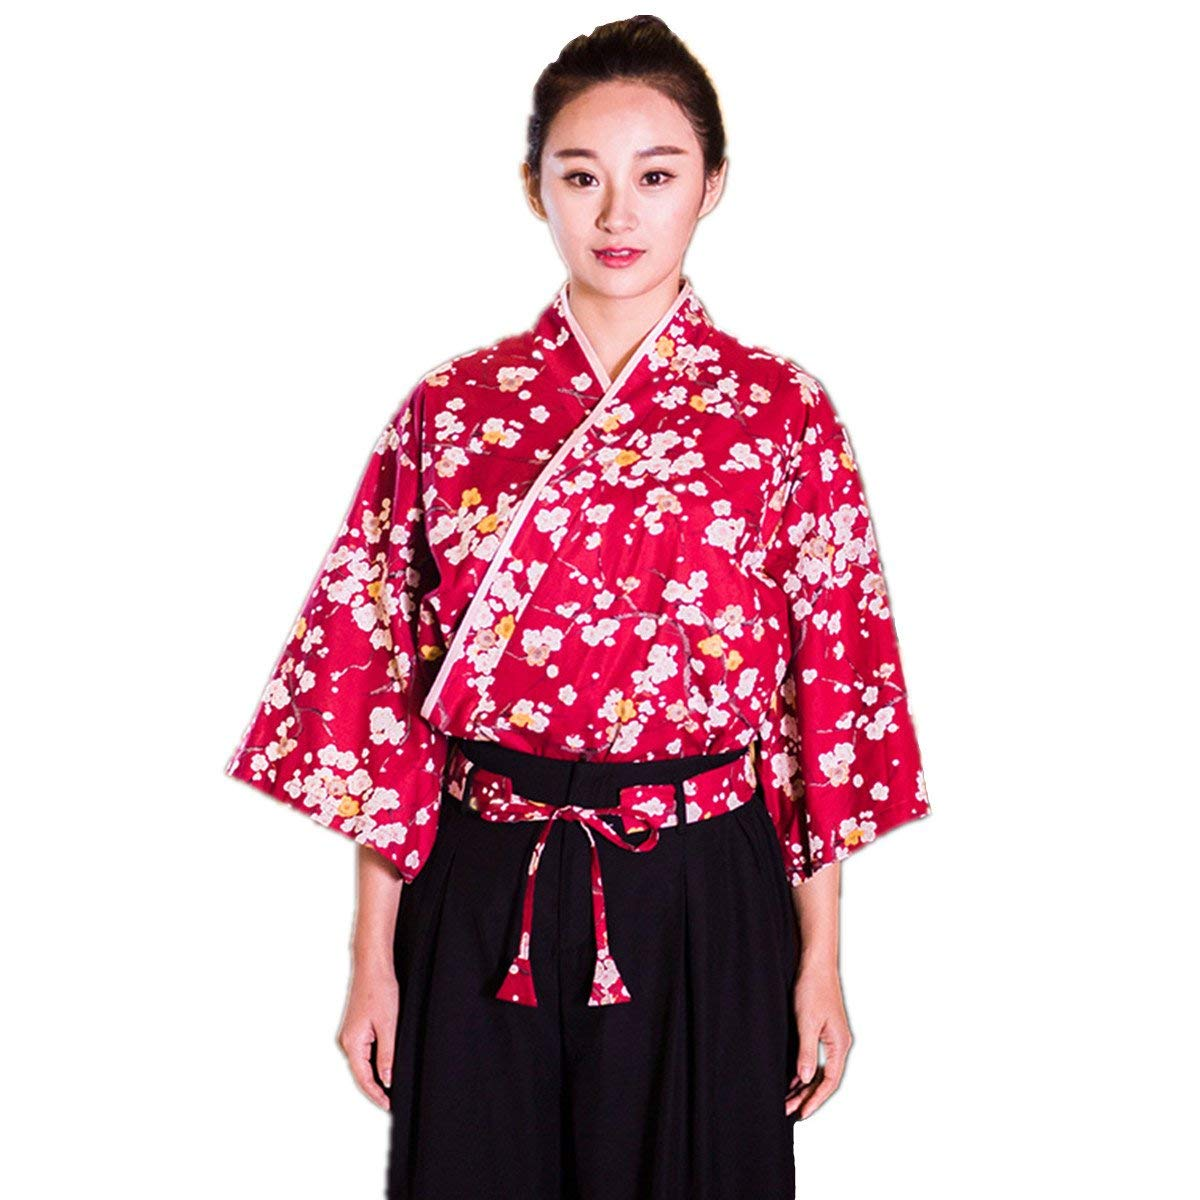 XINFU Sushi Waitress Uniform Red Plum Blossom 3/4 Long Sleeve Restaurant Japanese Kimono Kitchen Work Coat